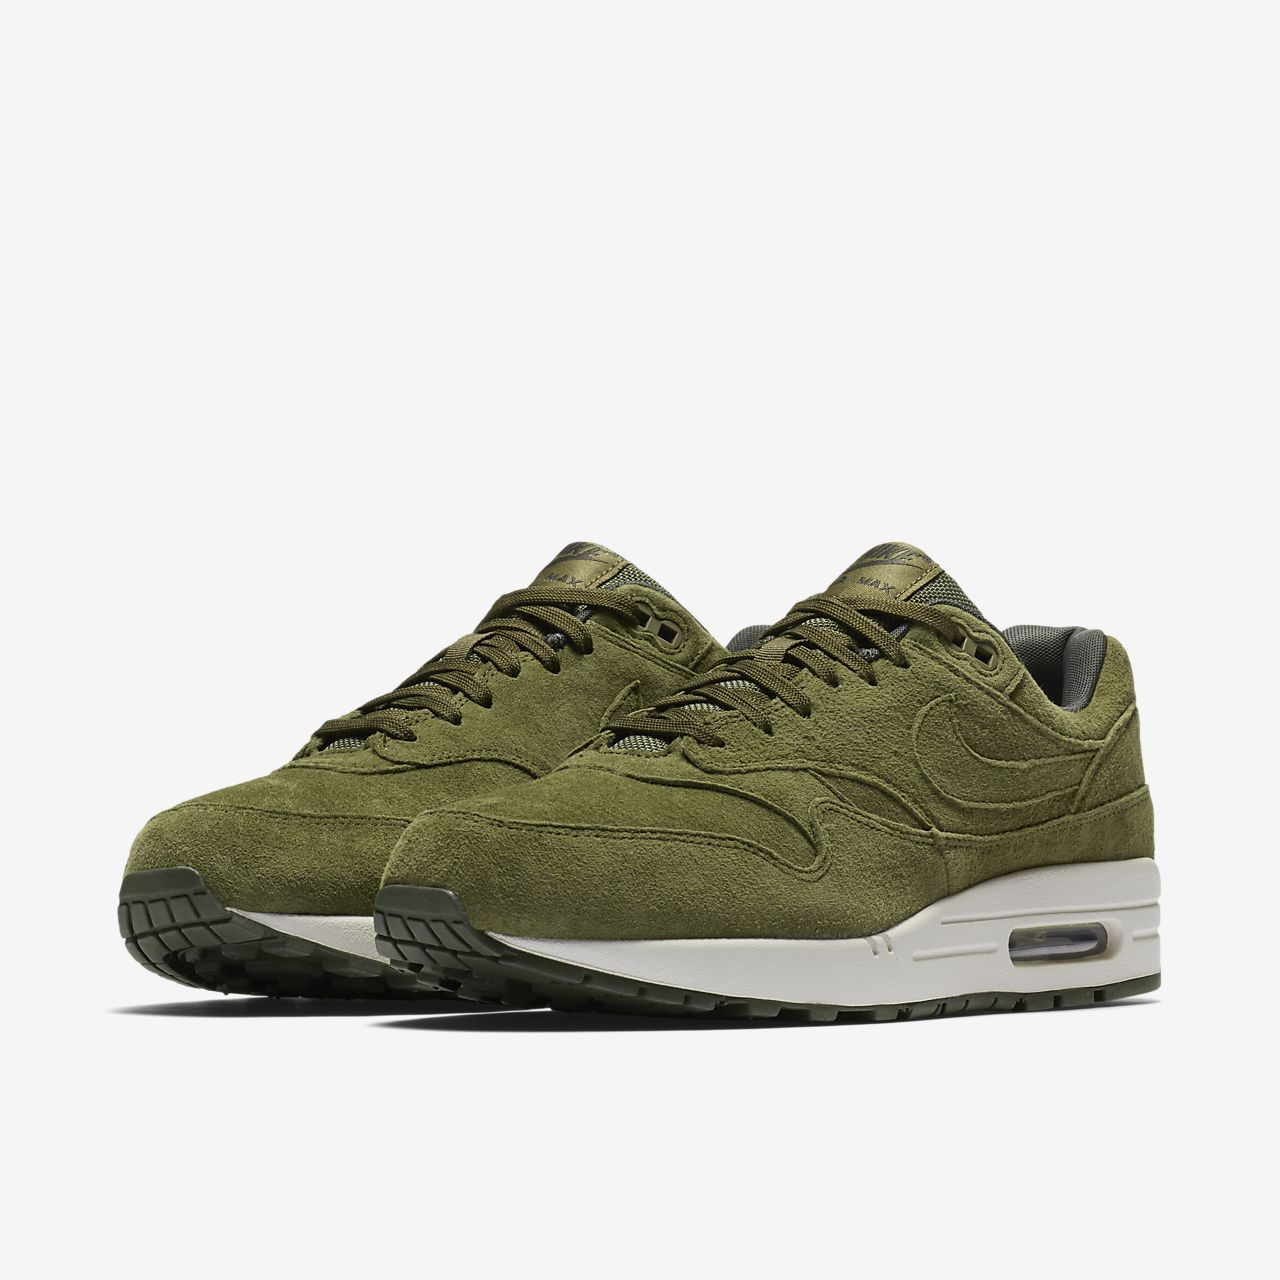 c9d7857cbc Nike Air Max 1 Premium Men's Shoe. Nike.com ZA